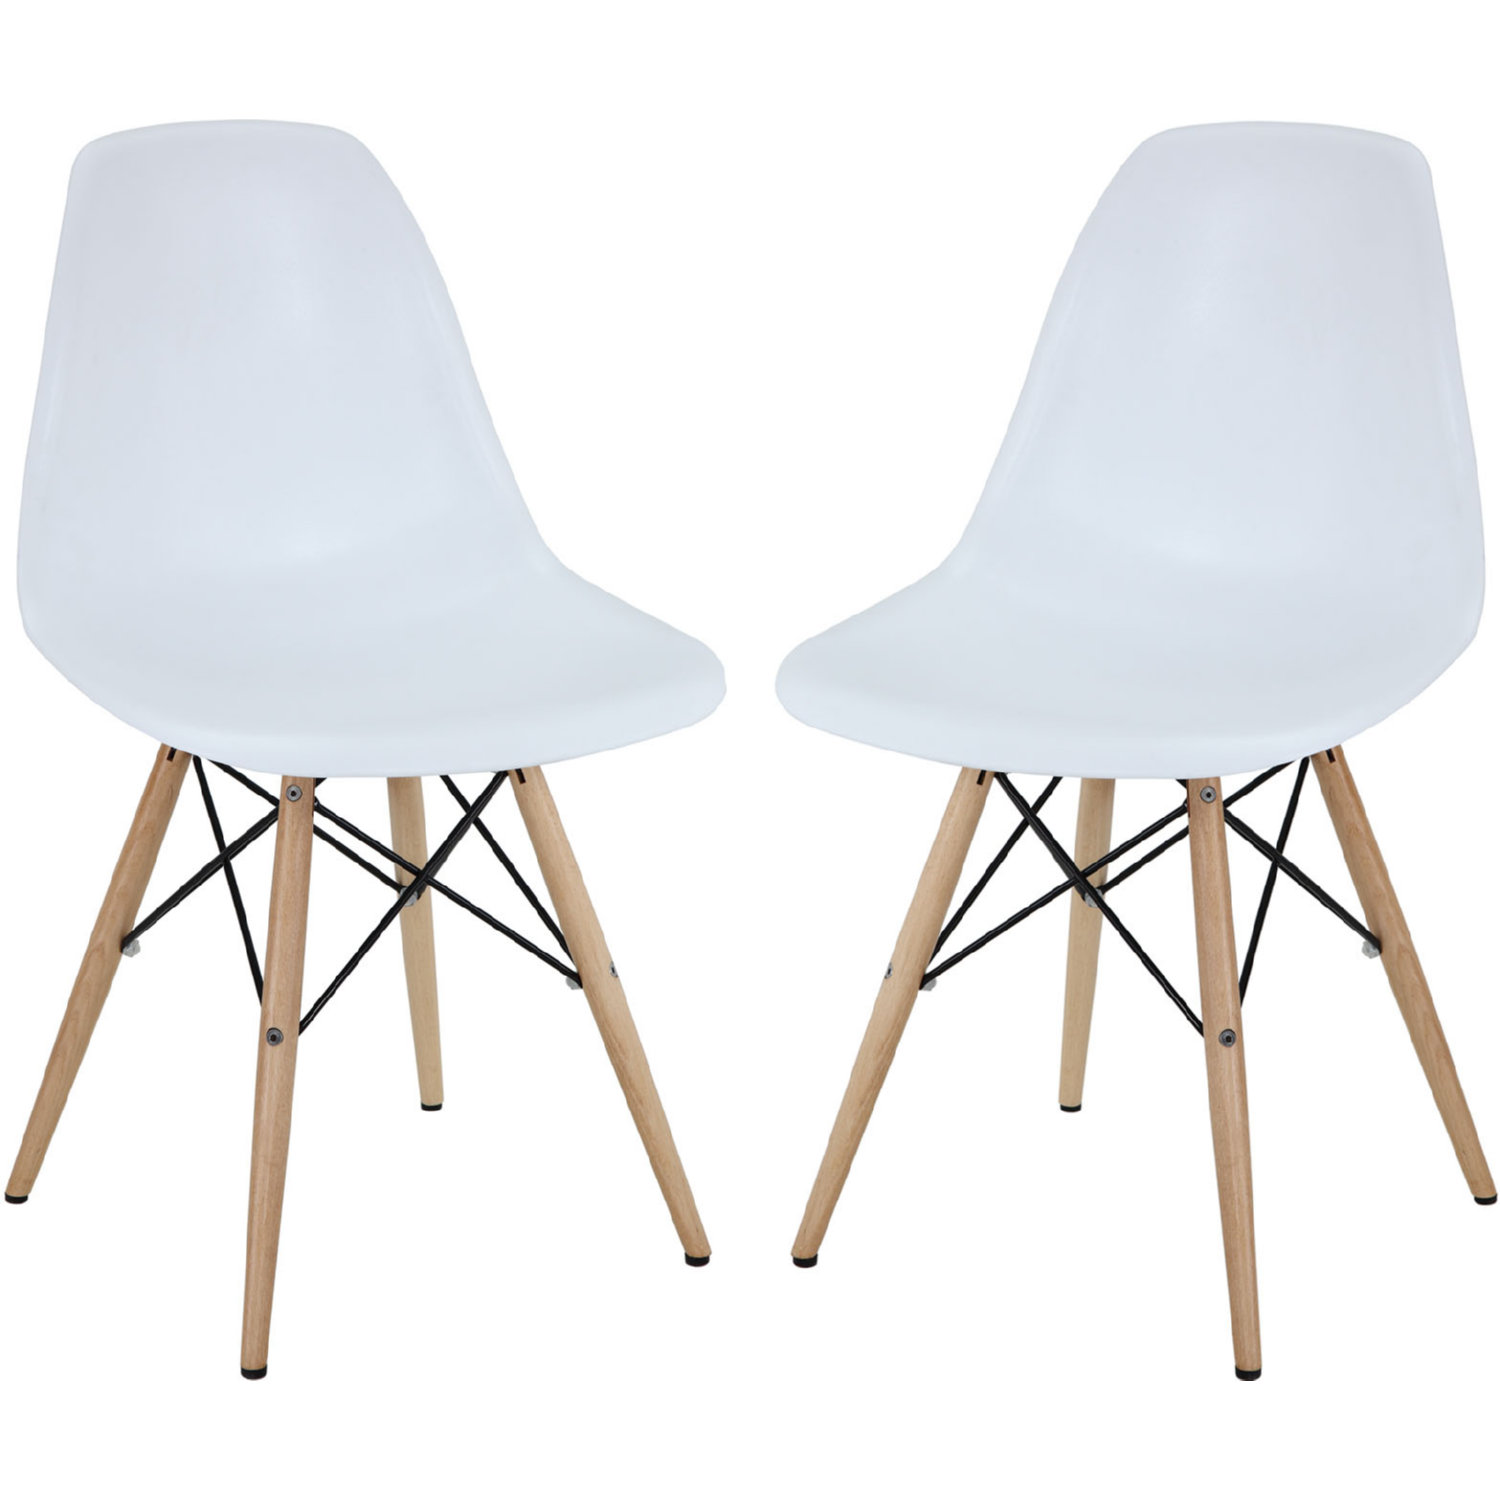 Super Pyramid Dining Chair In White On Wood Legs Set Of 2 By Modway Bralicious Painted Fabric Chair Ideas Braliciousco